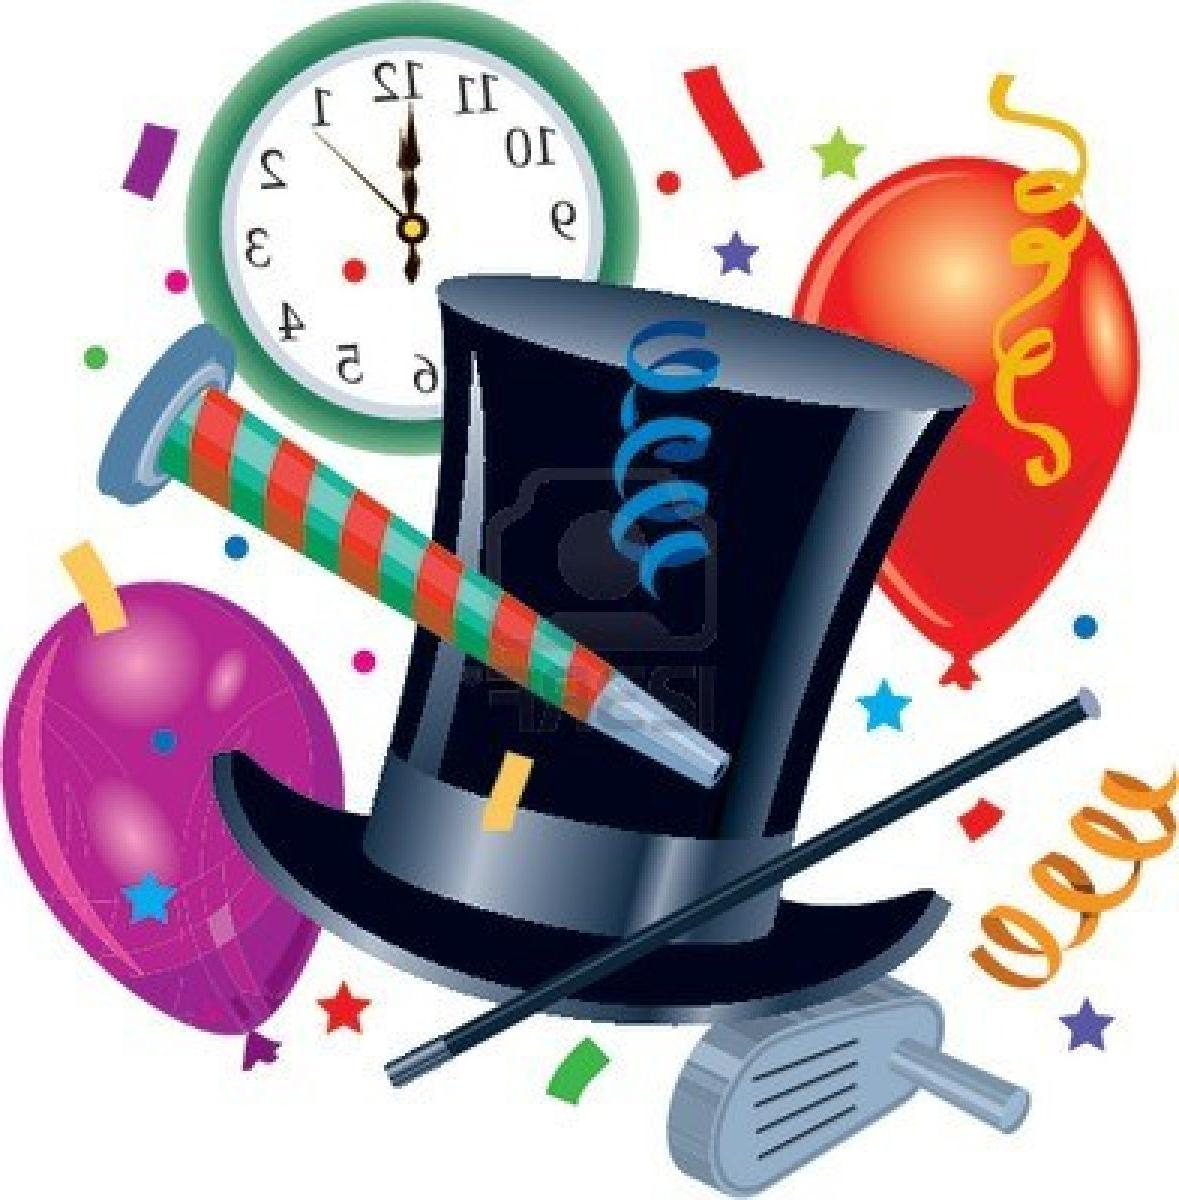 1179x1200 Hd New Year Party Clip Art File Free Free Vector Art, Images